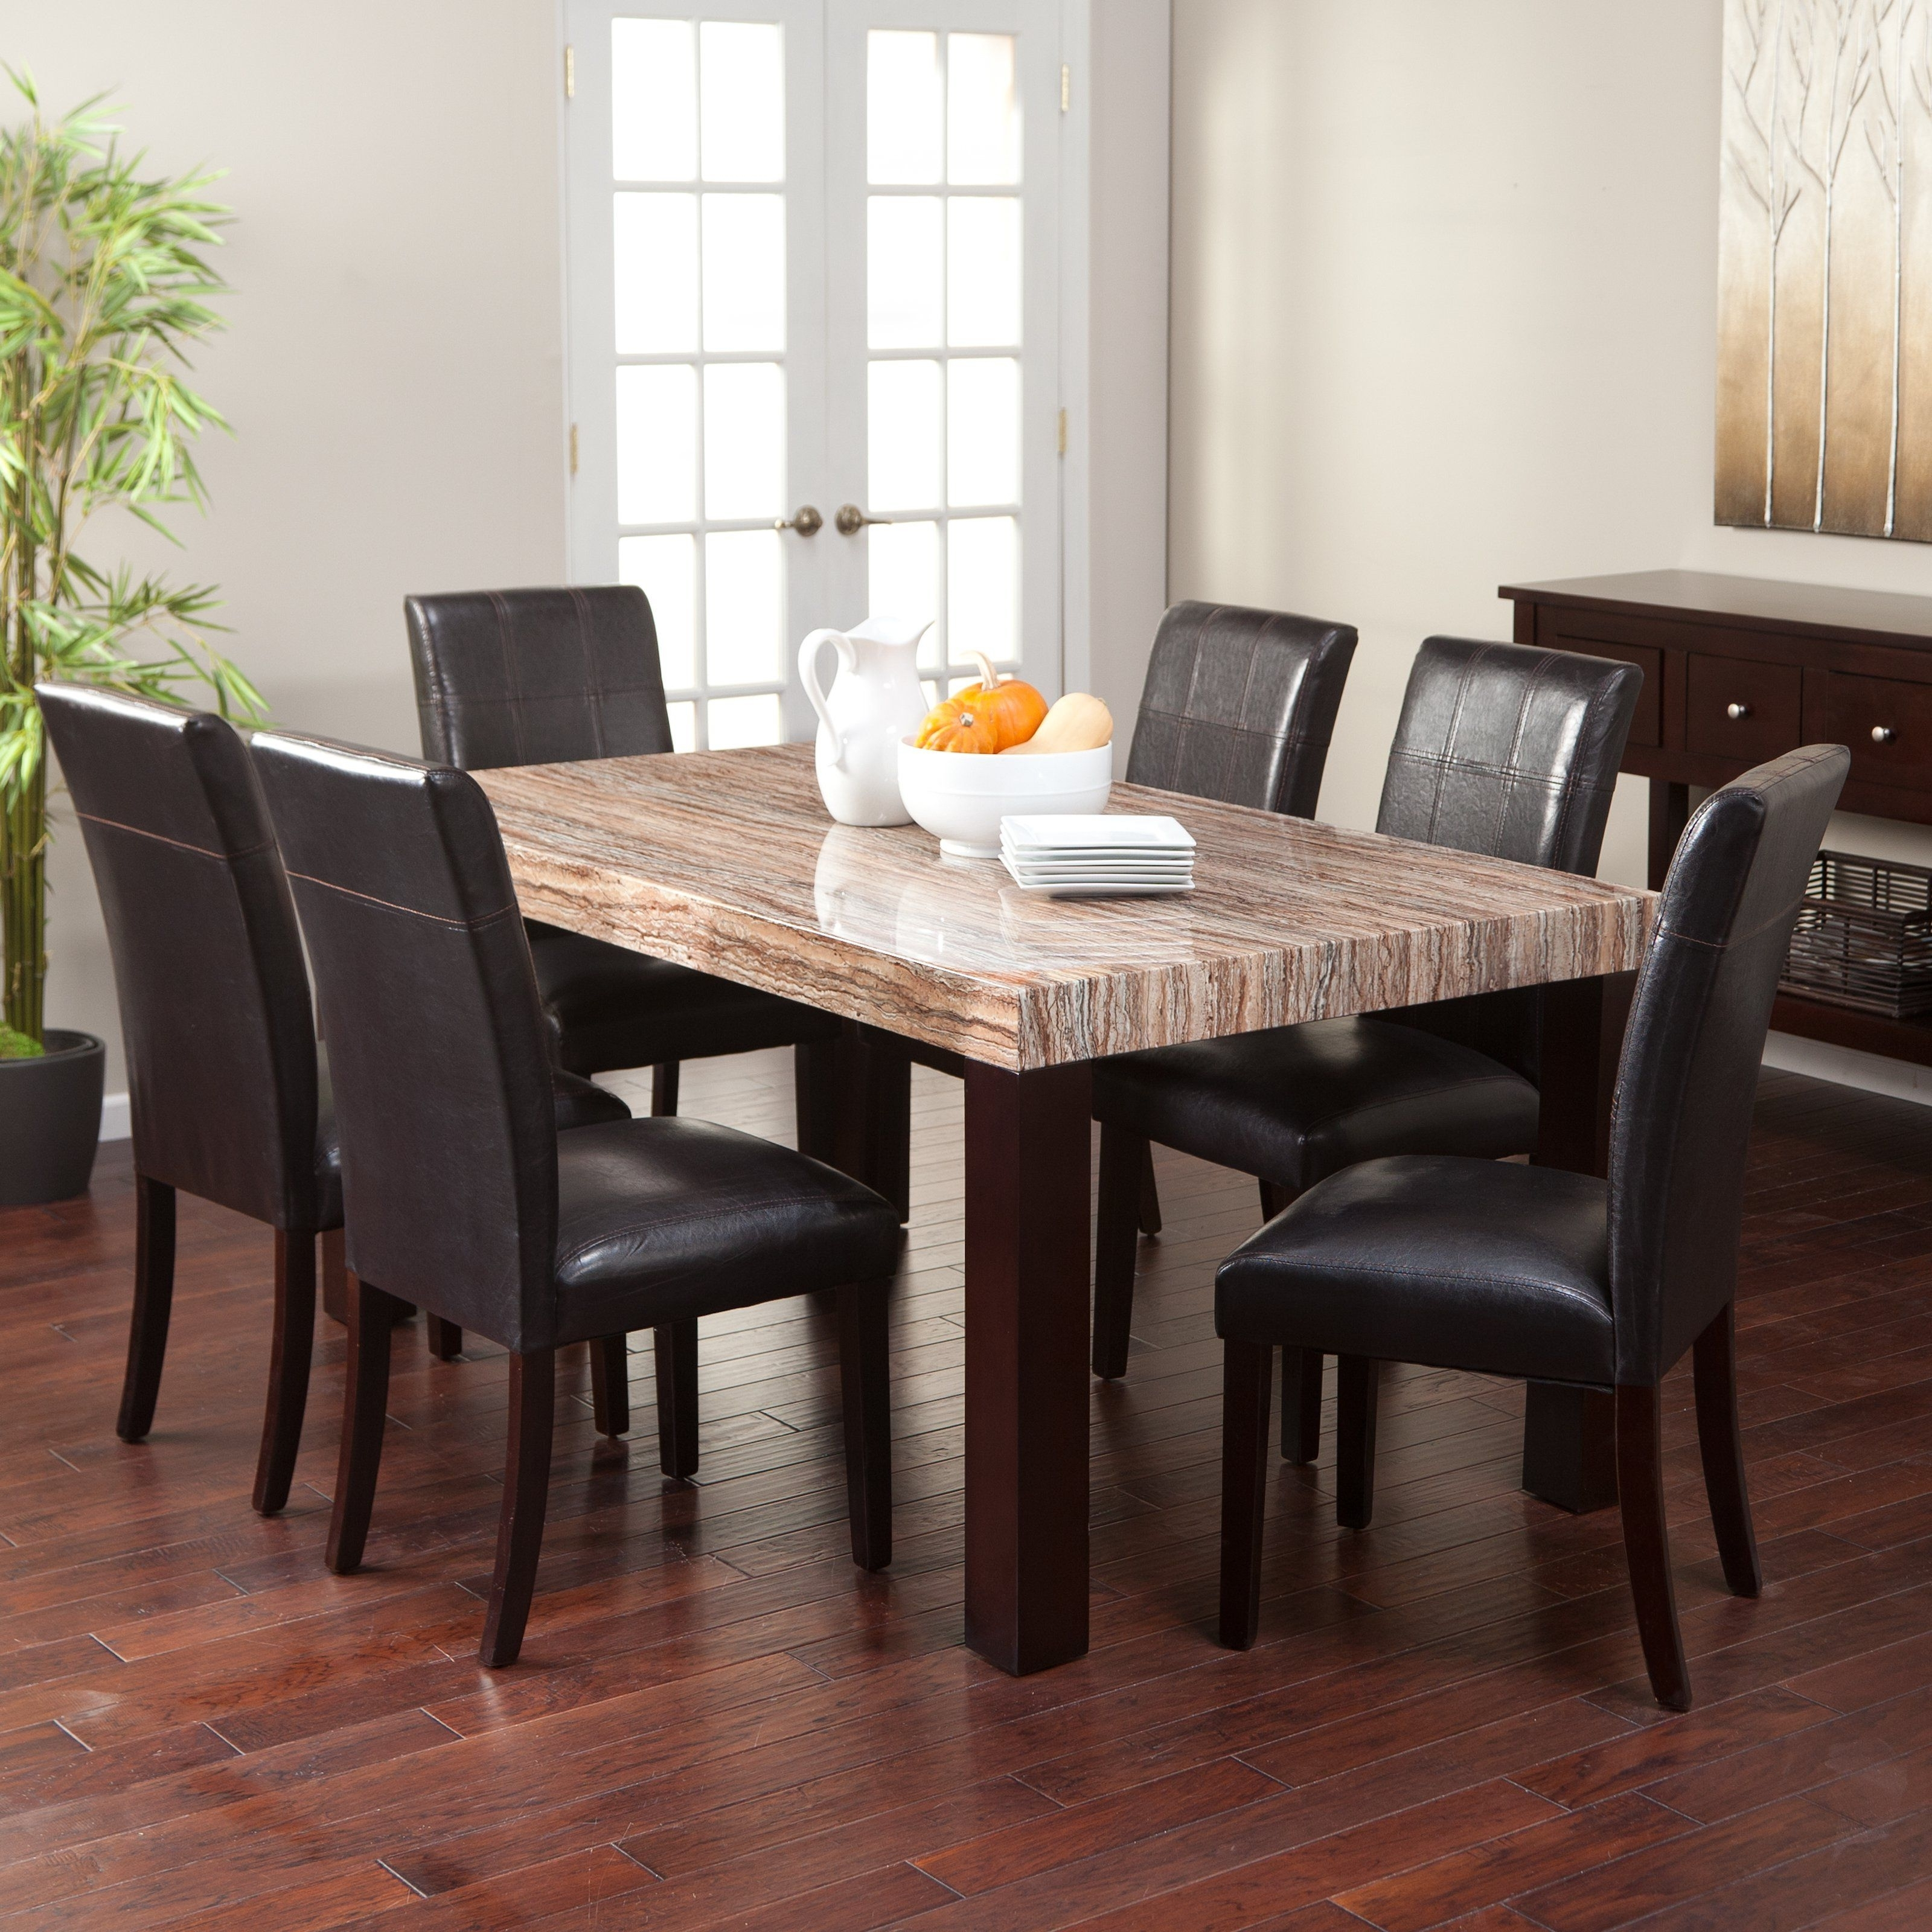 Leon 7 Piece Dining Sets Pertaining To Most Recent Carmine 7 Piece Dining Table Set – With Its Creamy Caramel Colored (View 8 of 25)